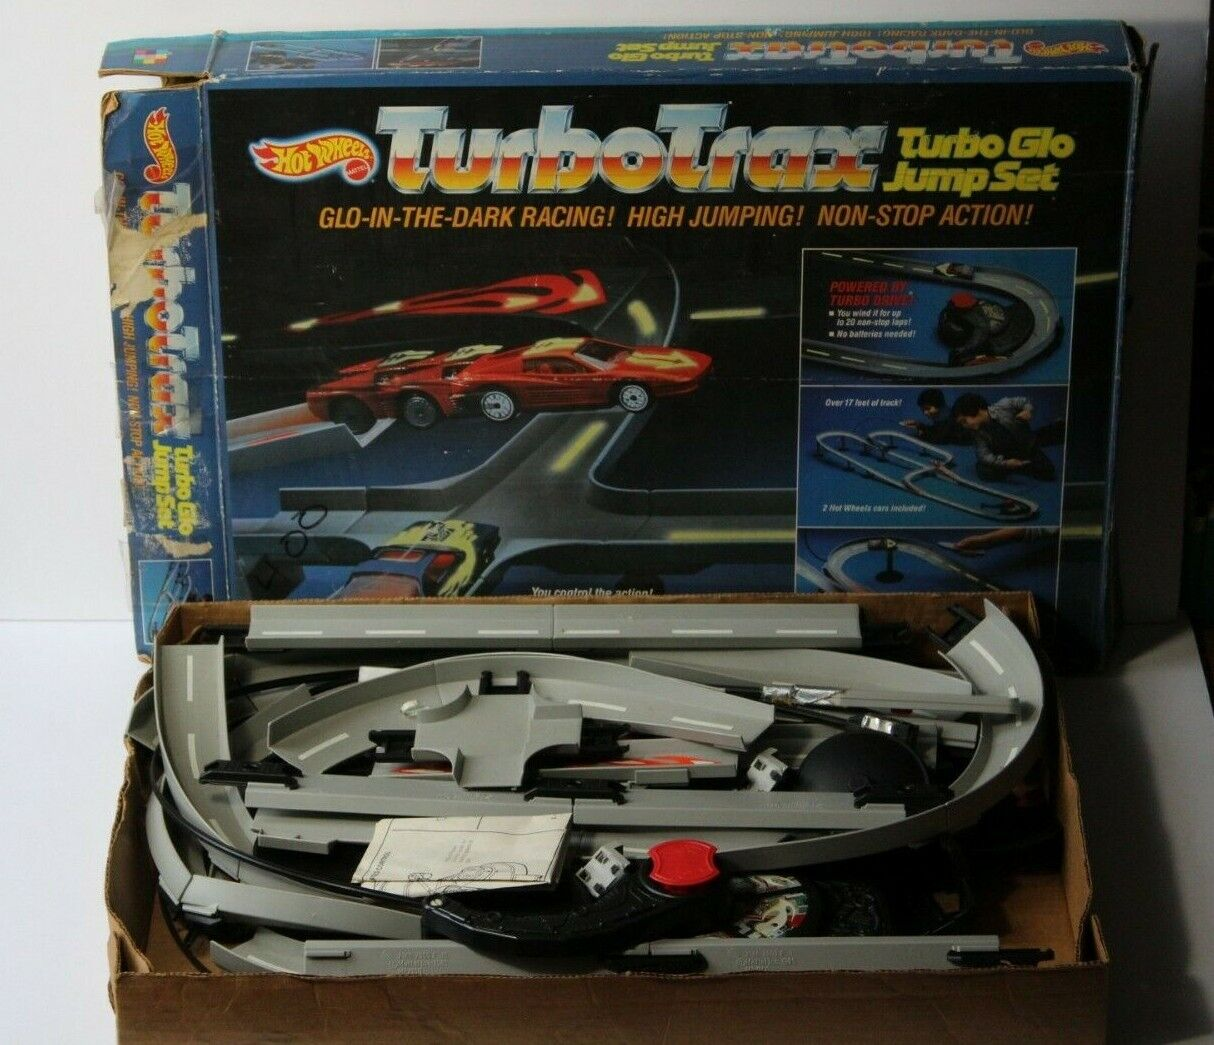 Vintage 1986 Hot Wheels Turbo Trax Racing Racing Racing Car Toy in Box Original Instructions a109c8